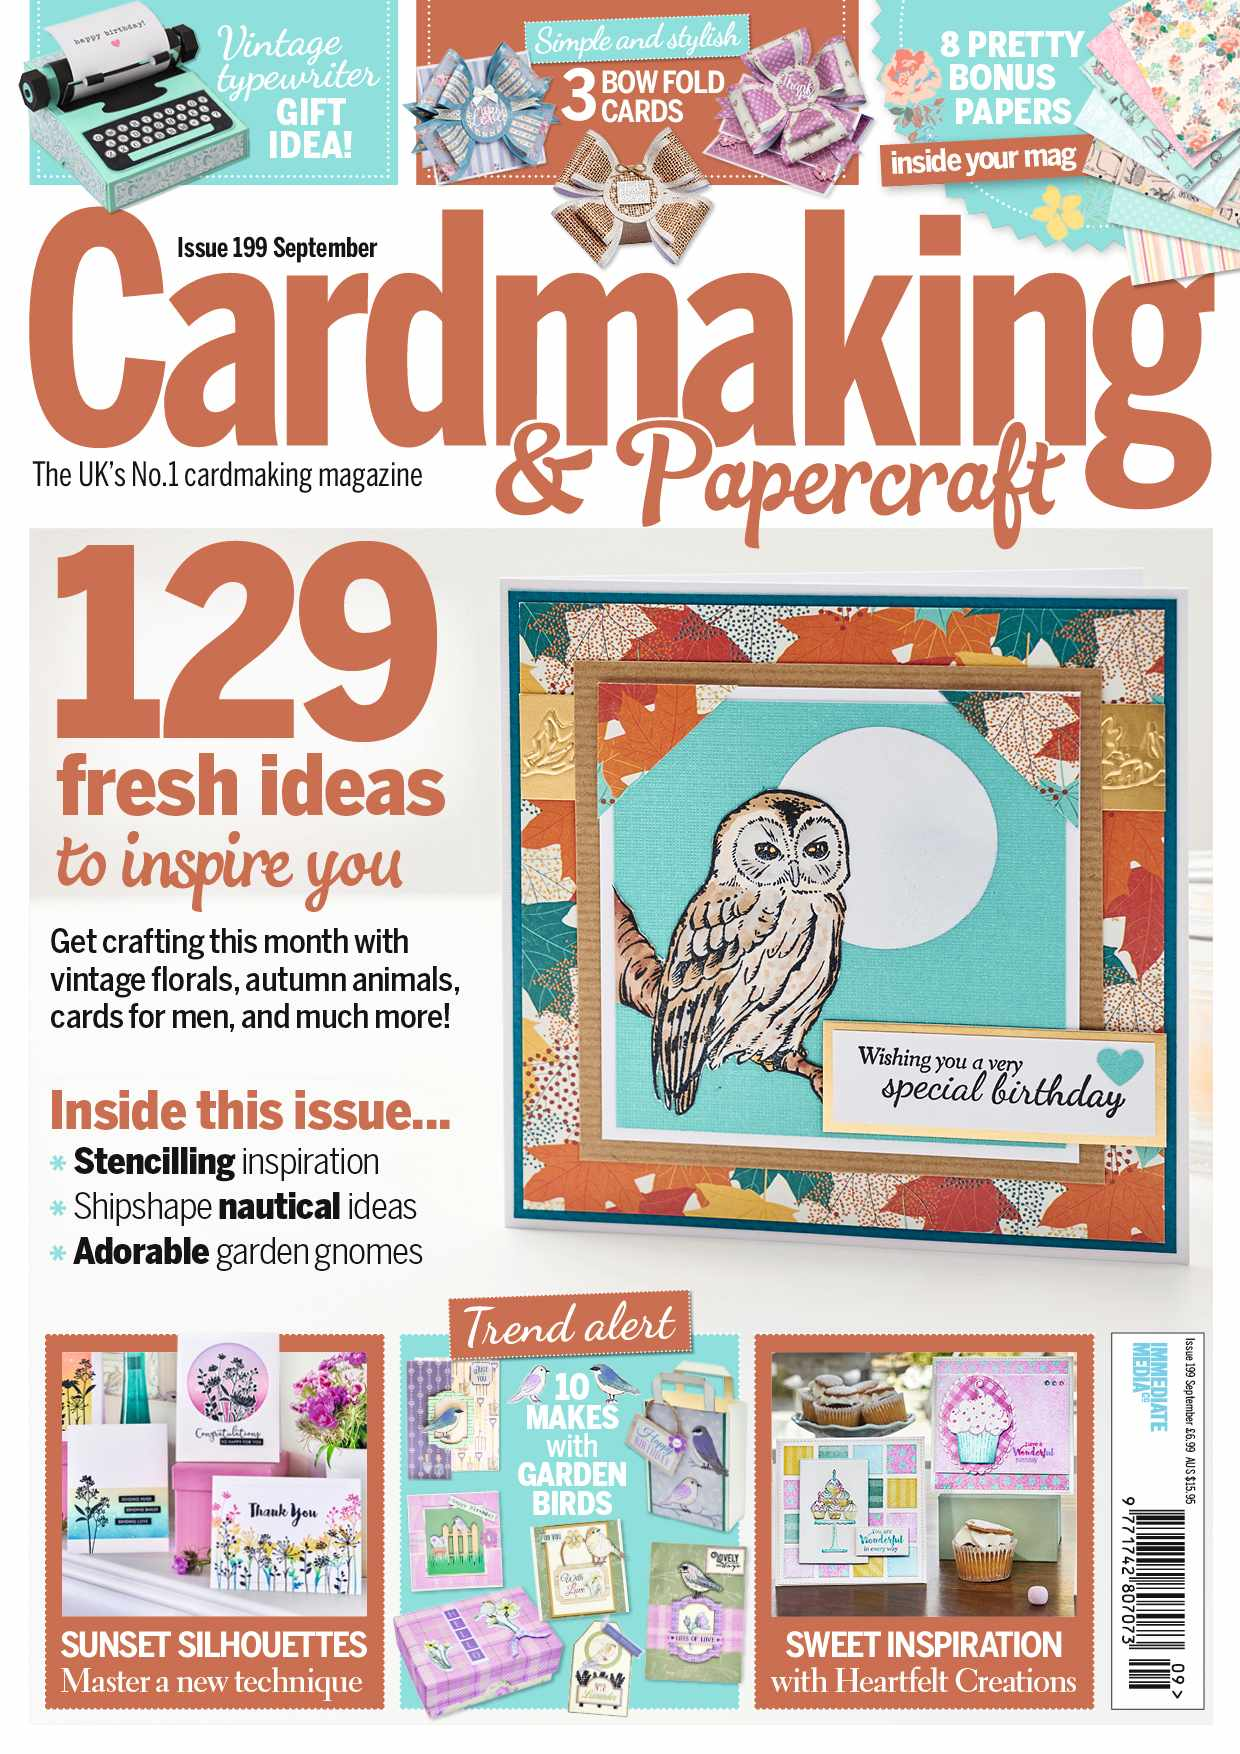 Cardmaking and Papercraft magazine issue 199